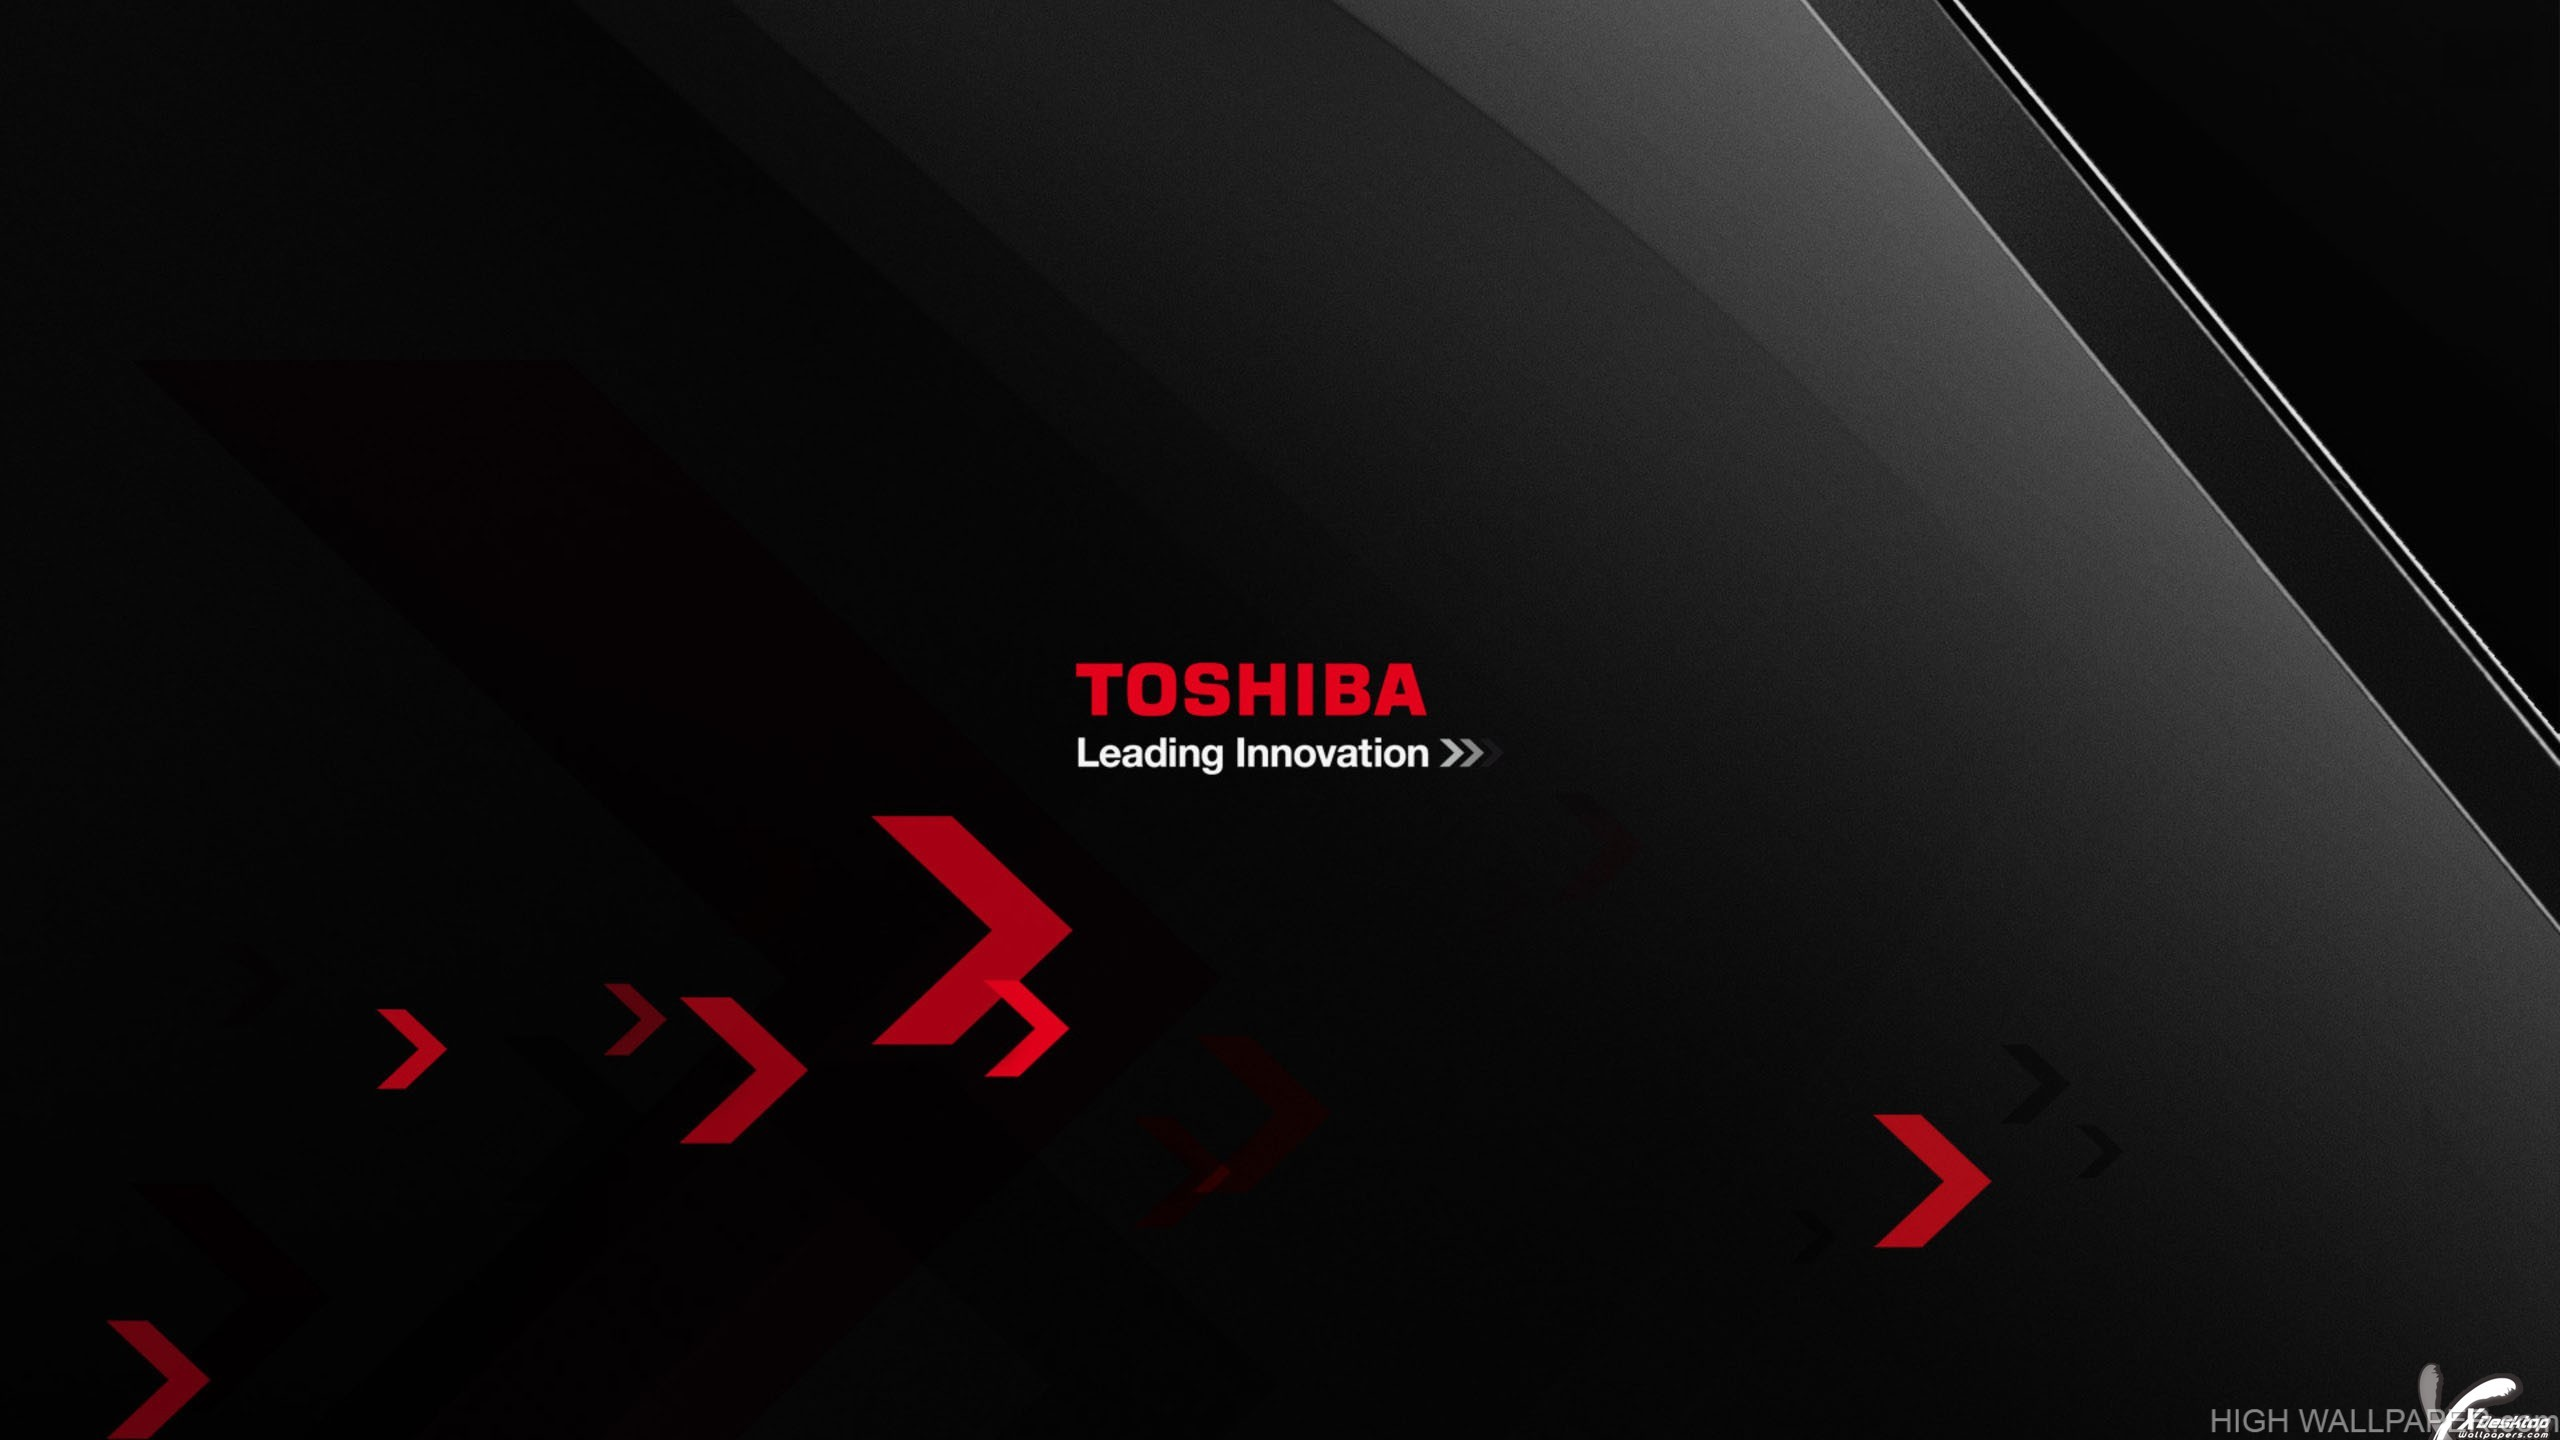 Logo On Black Backgroung Of Toshiba Leading Innovation